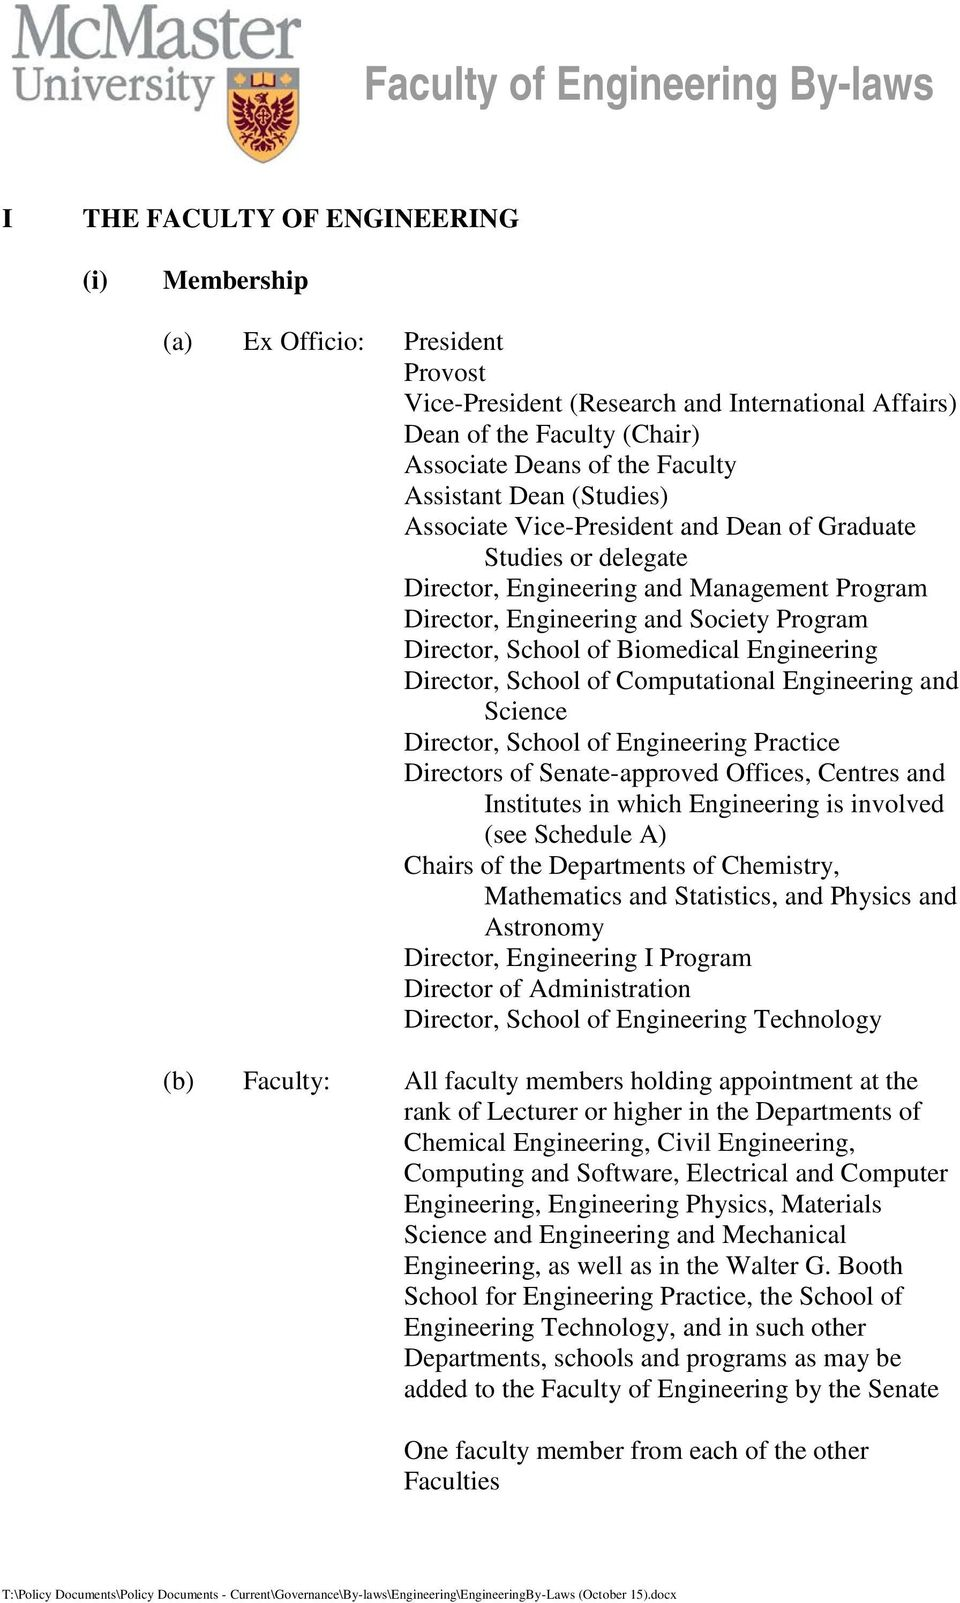 Computational Engineering and Science Director, School of Engineering Practice Directors of Senate-approved Offices, Centres and Institutes in which Engineering is involved (see Schedule A) Chairs of